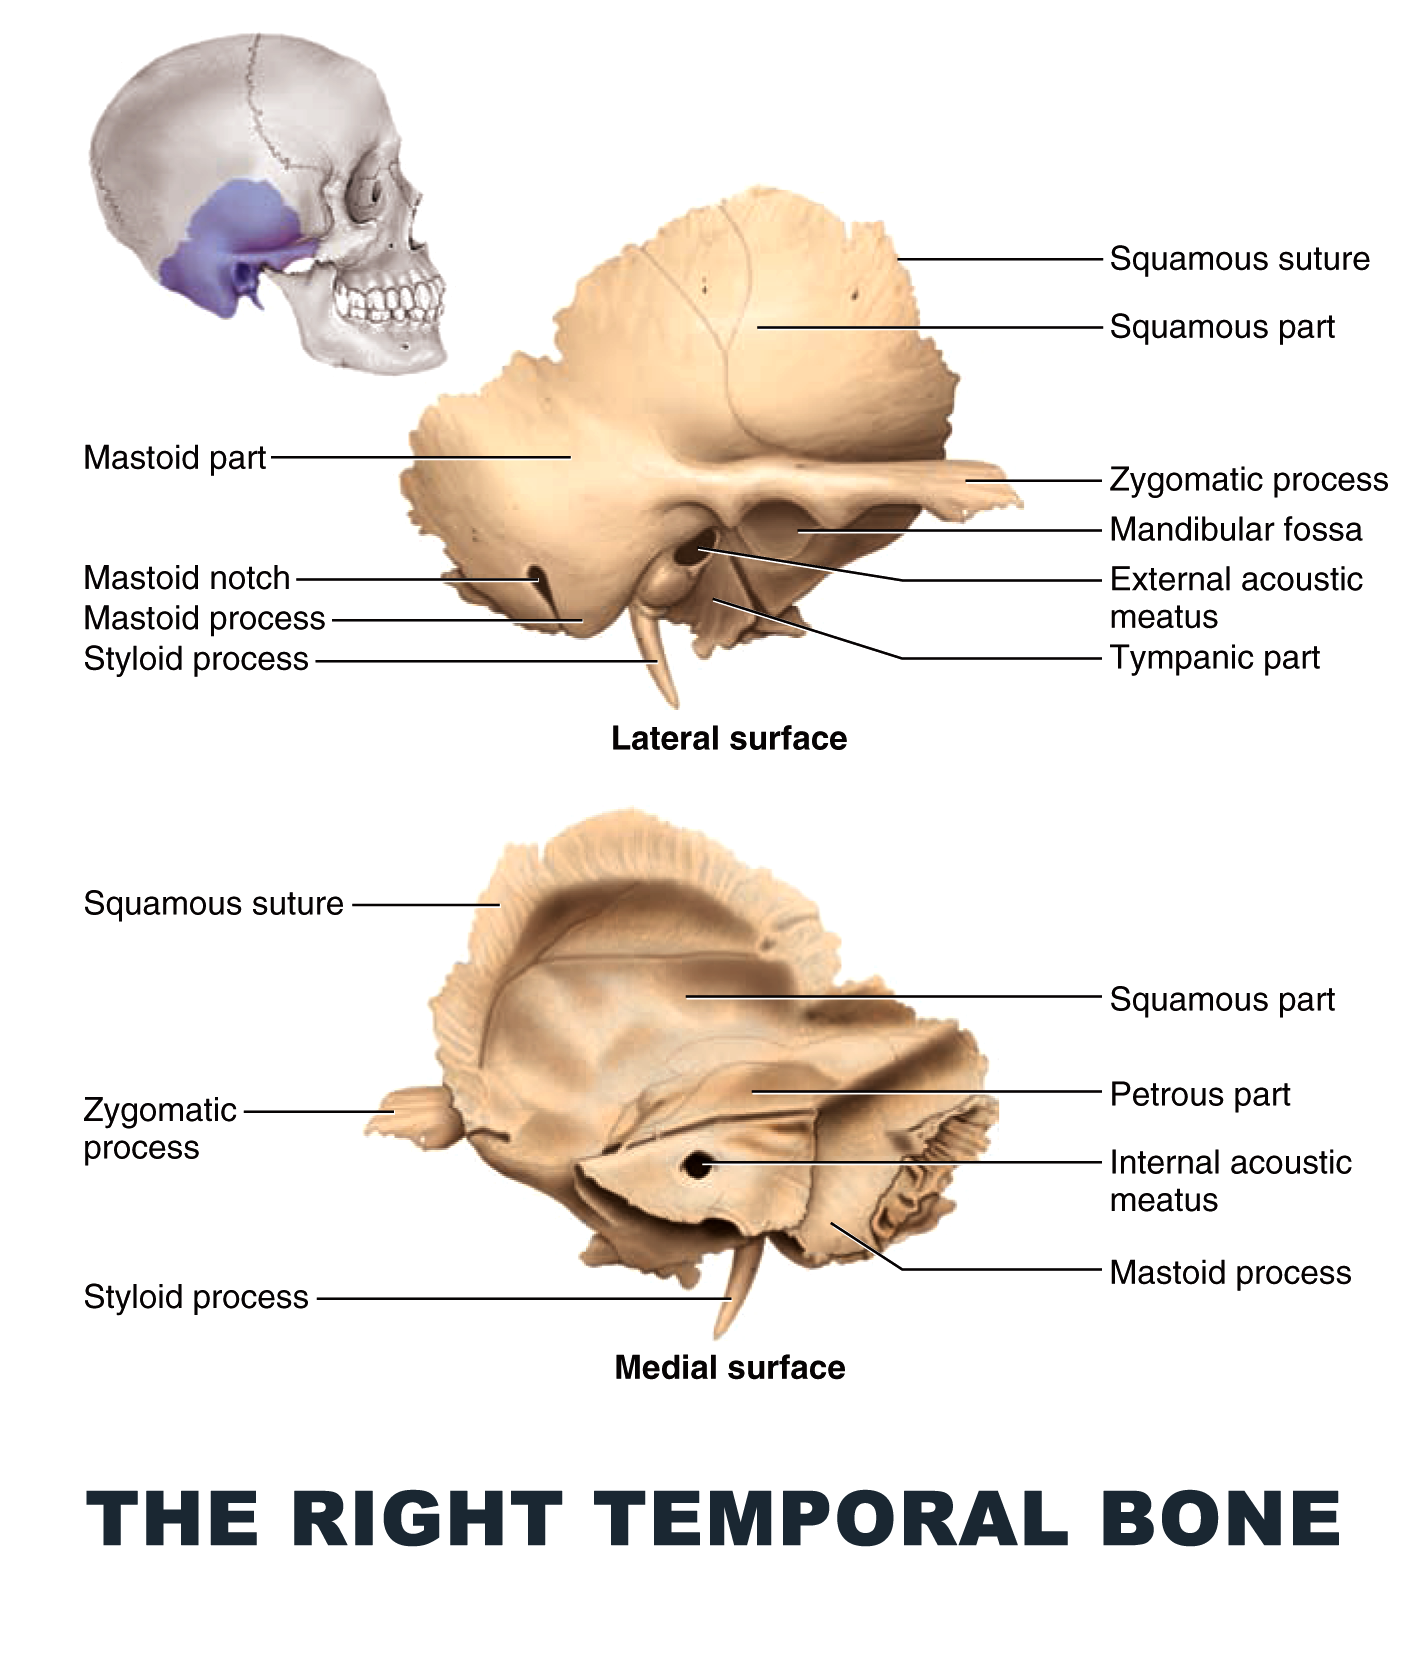 The Right Temporal Bone Anatomy Images Illustrations Anatomy